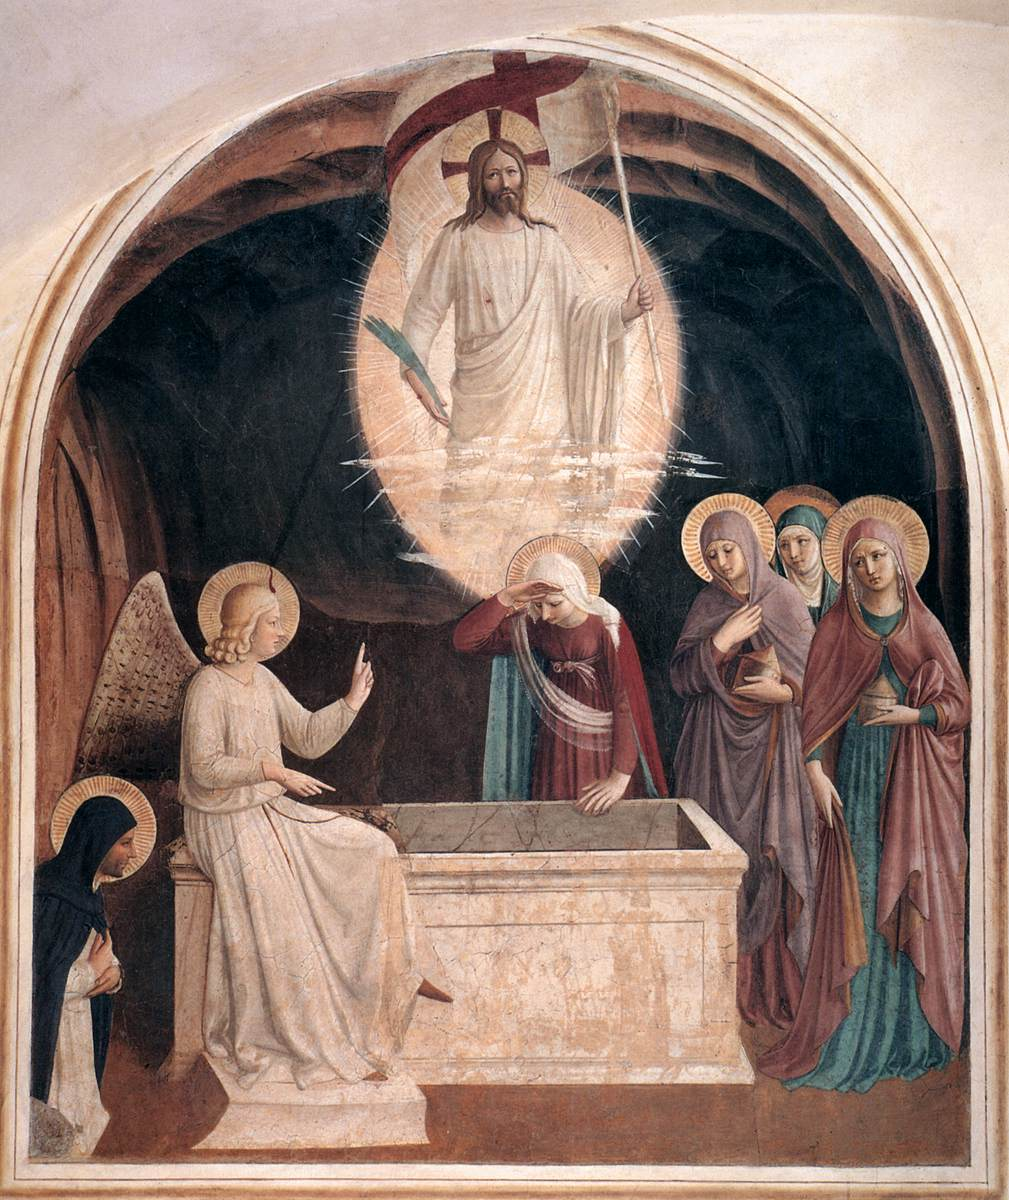 Fra Angelico, Christ and the Women at the Tomb, 1440 and 1442.